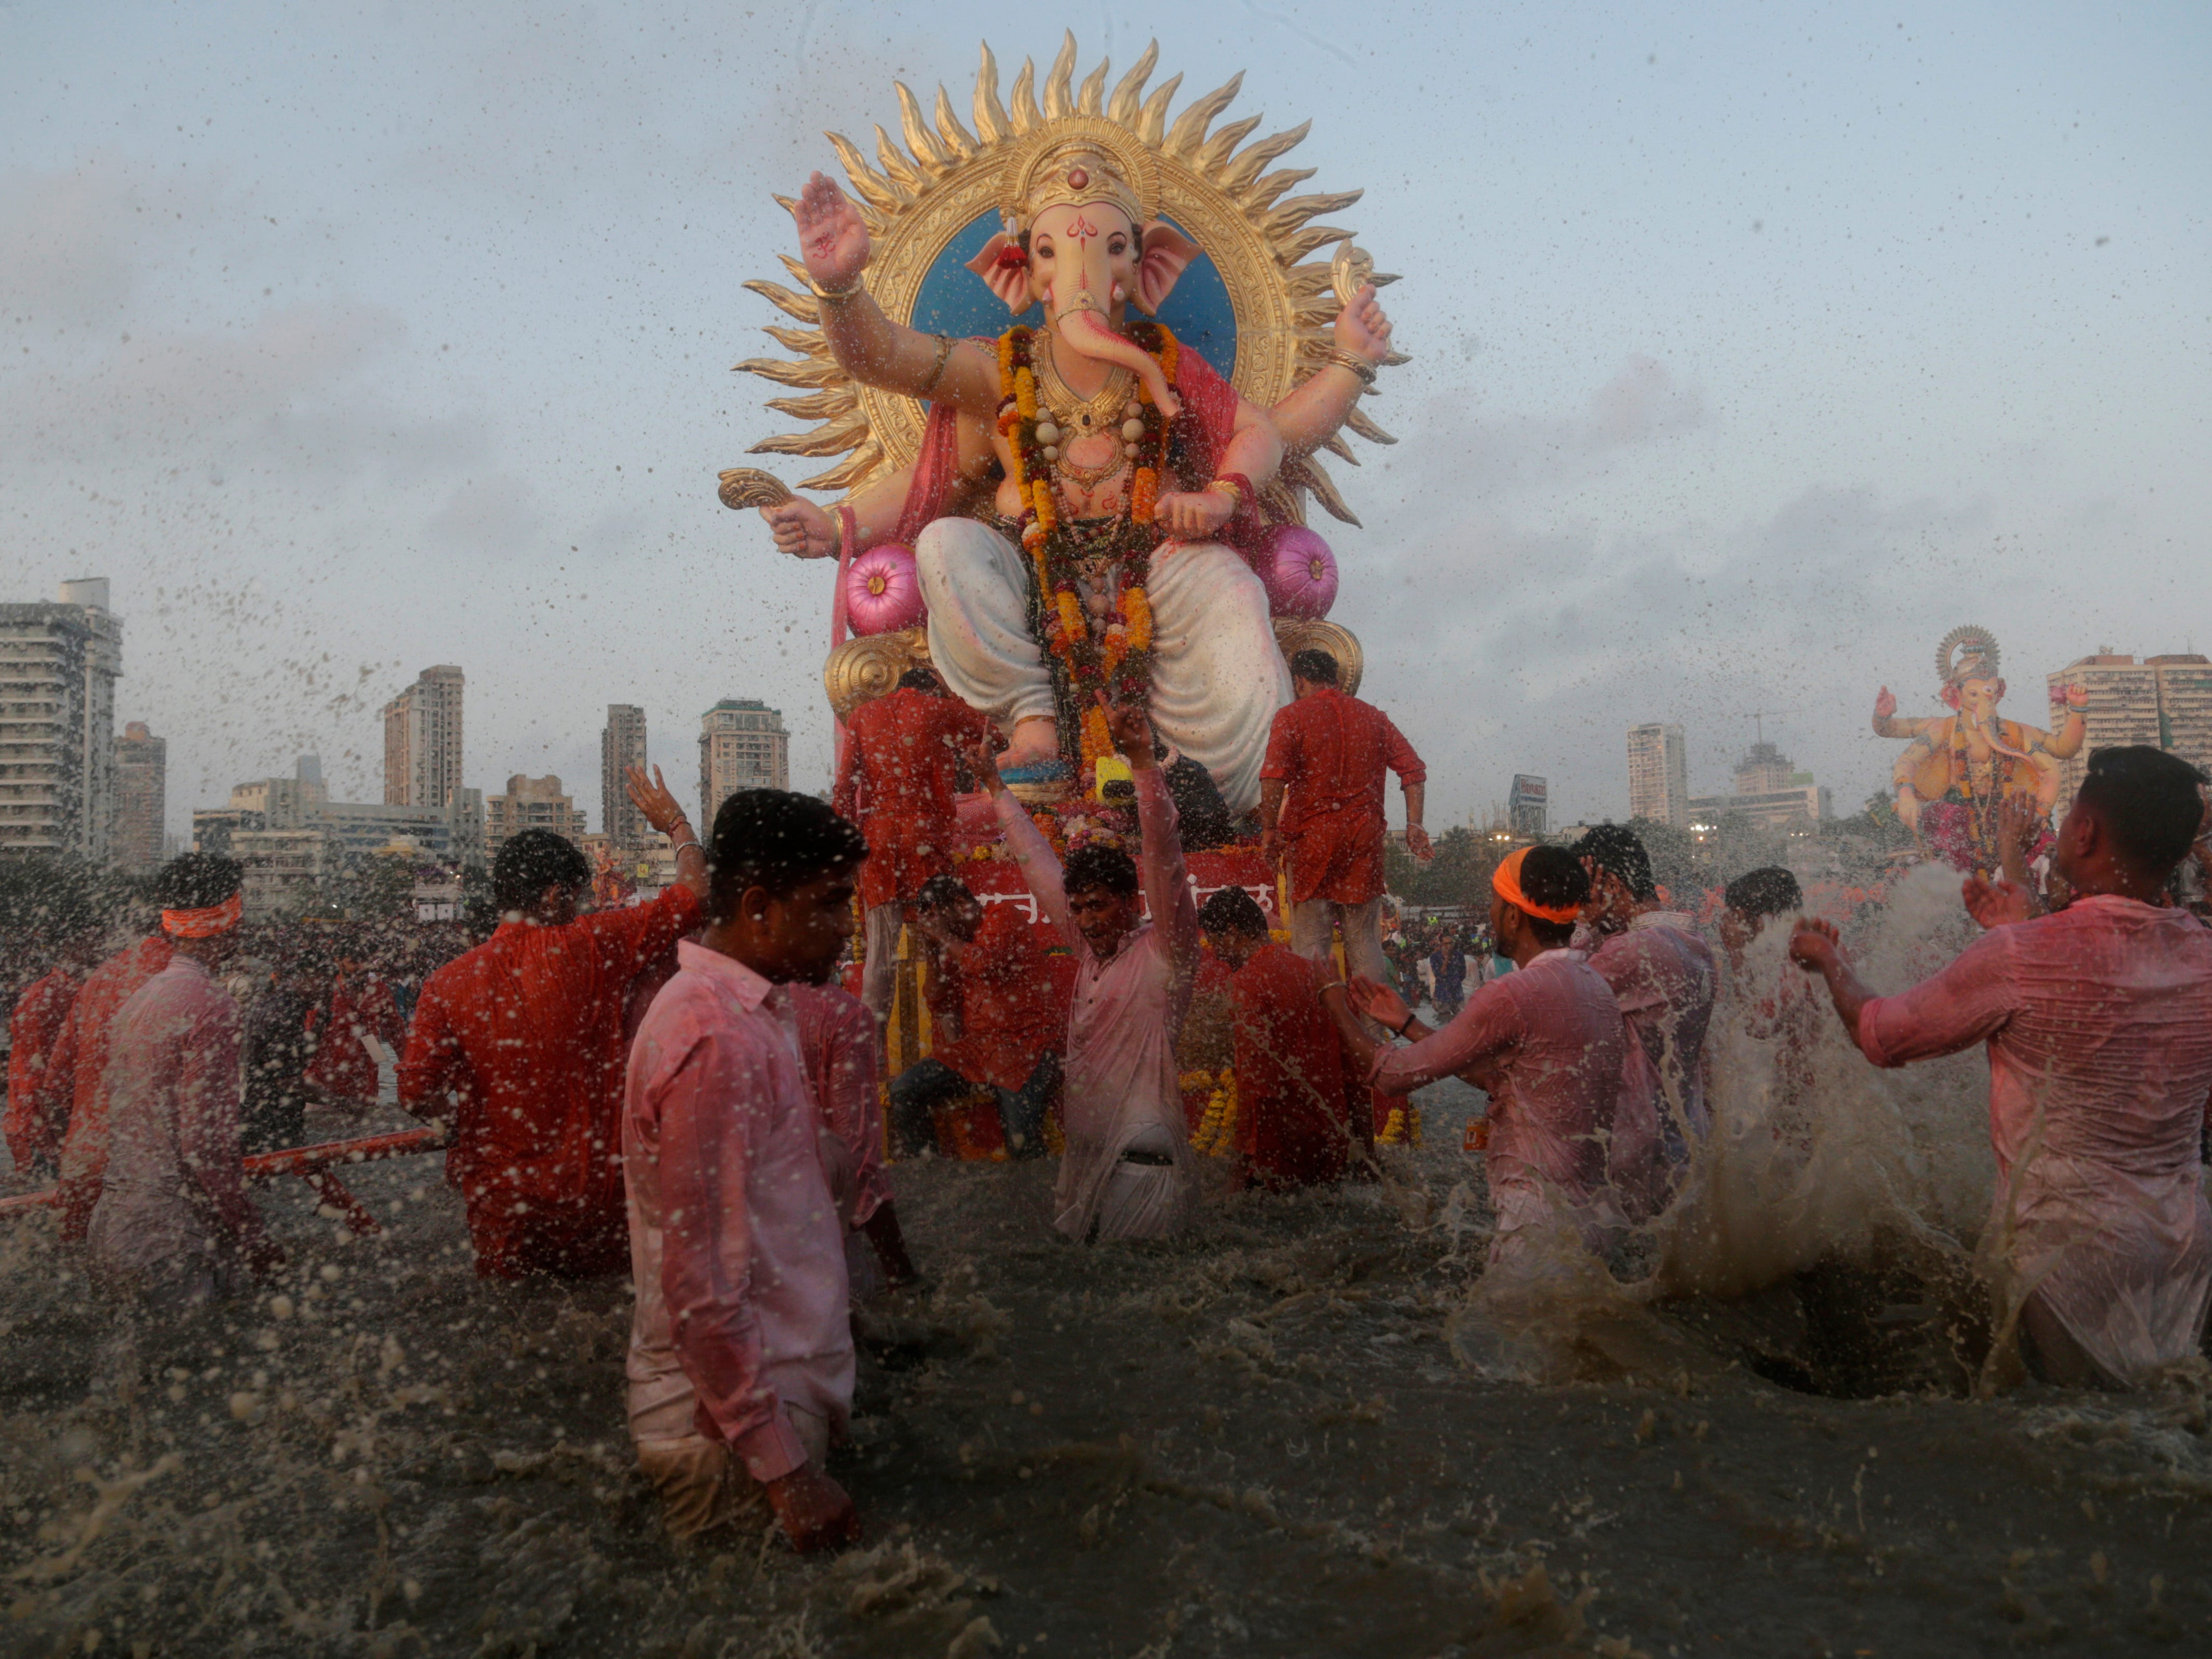 Devotees prepare to immerse idols of elephant-headed Hindu god Ganesha in the Arabian Sea, marking the end of the 10-day long Ganesh Chaturthi festival in Mumbai, India, Sunday, Sept. 23, 2018.